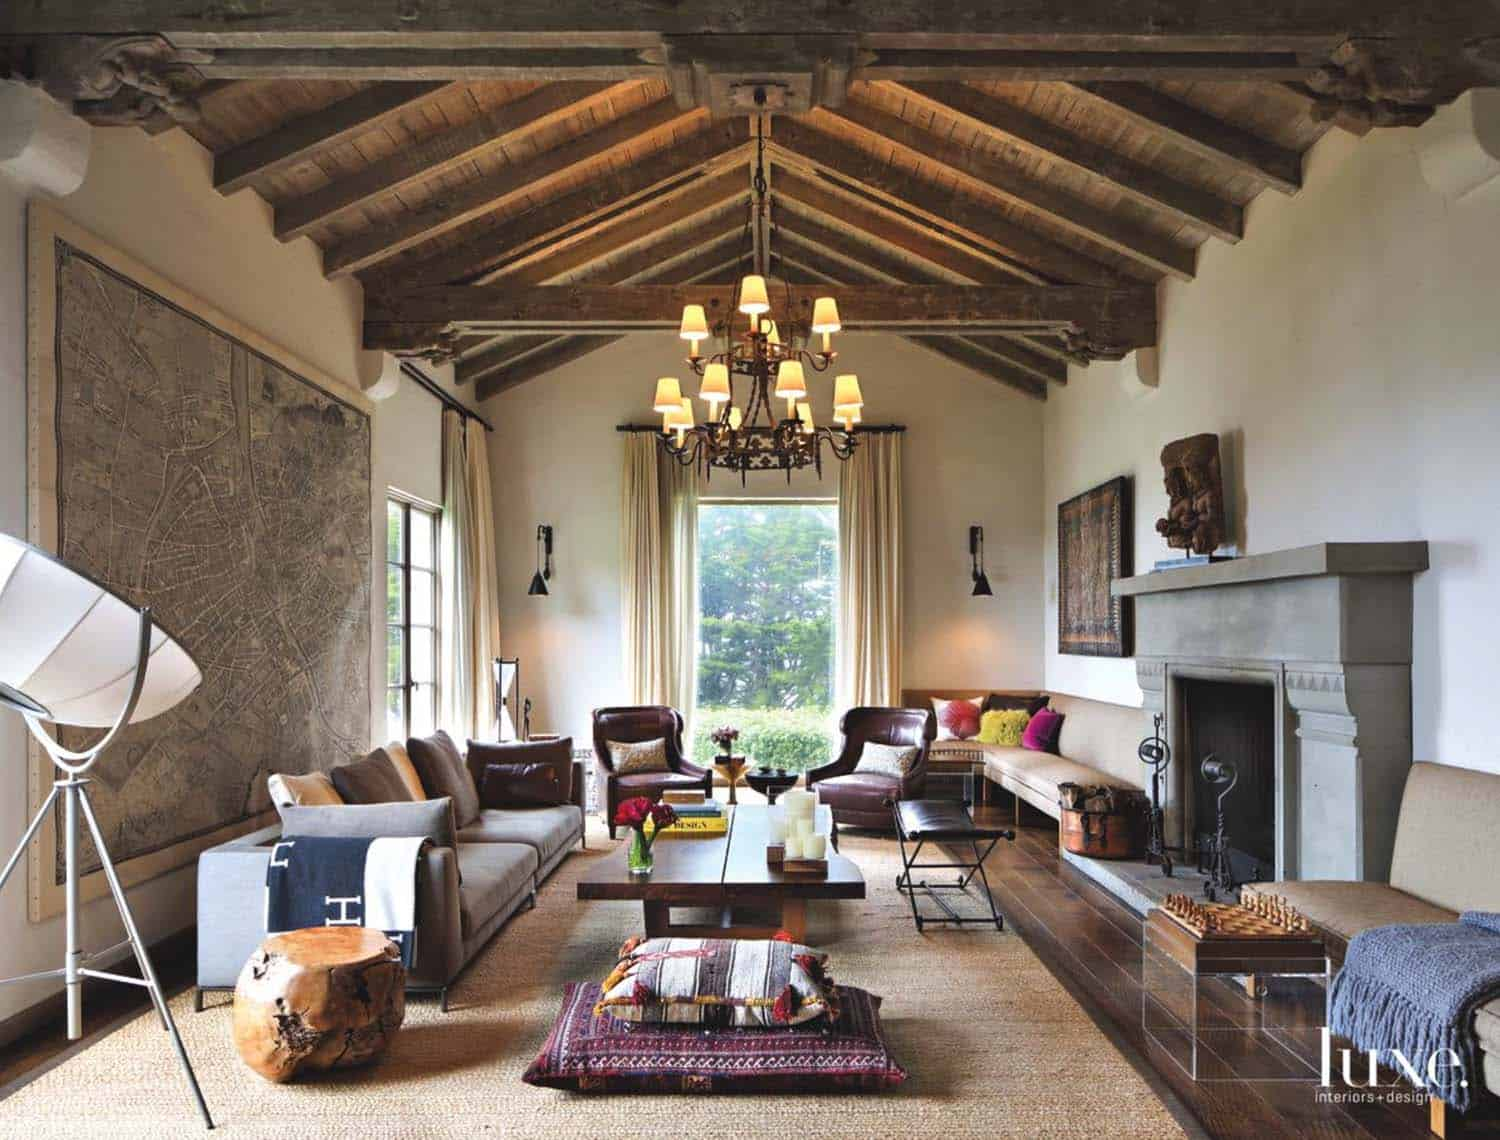 Gorgeous spanish colonial style renovation in san francisco architecture and design - Spanish home interior design ideas ...